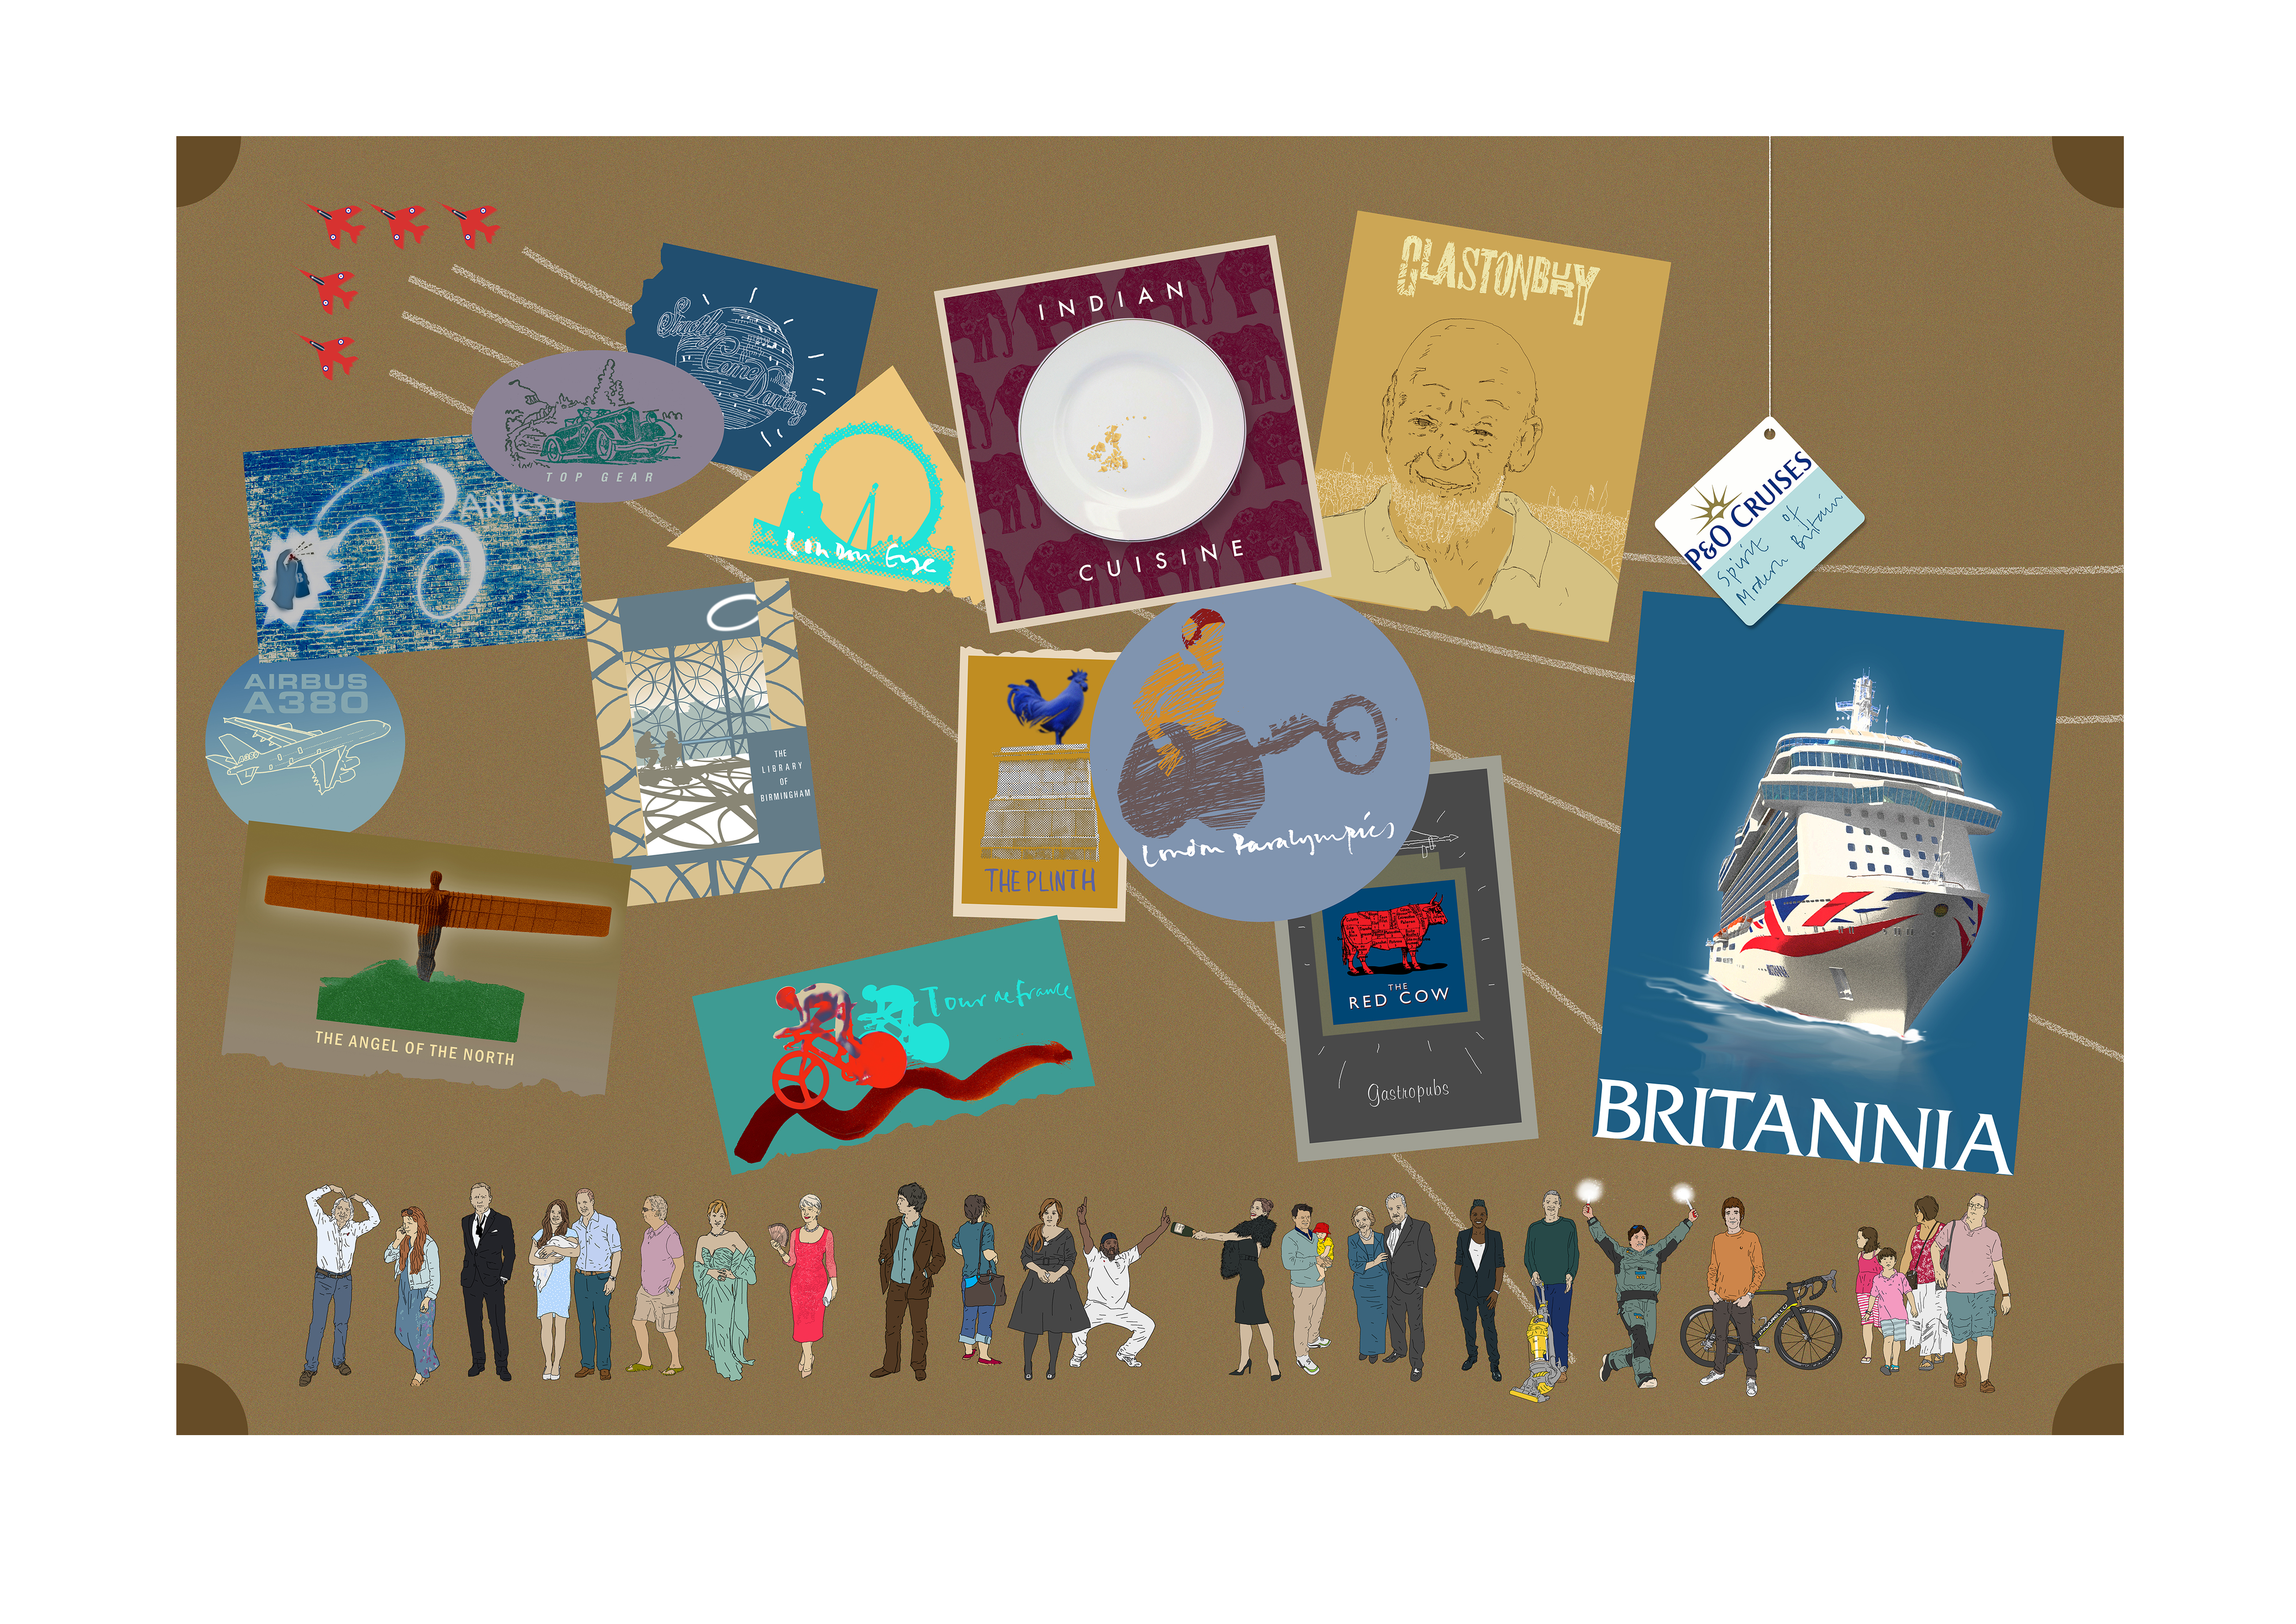 National treasures... Indian cuisine, the Angel of the North and Banksy